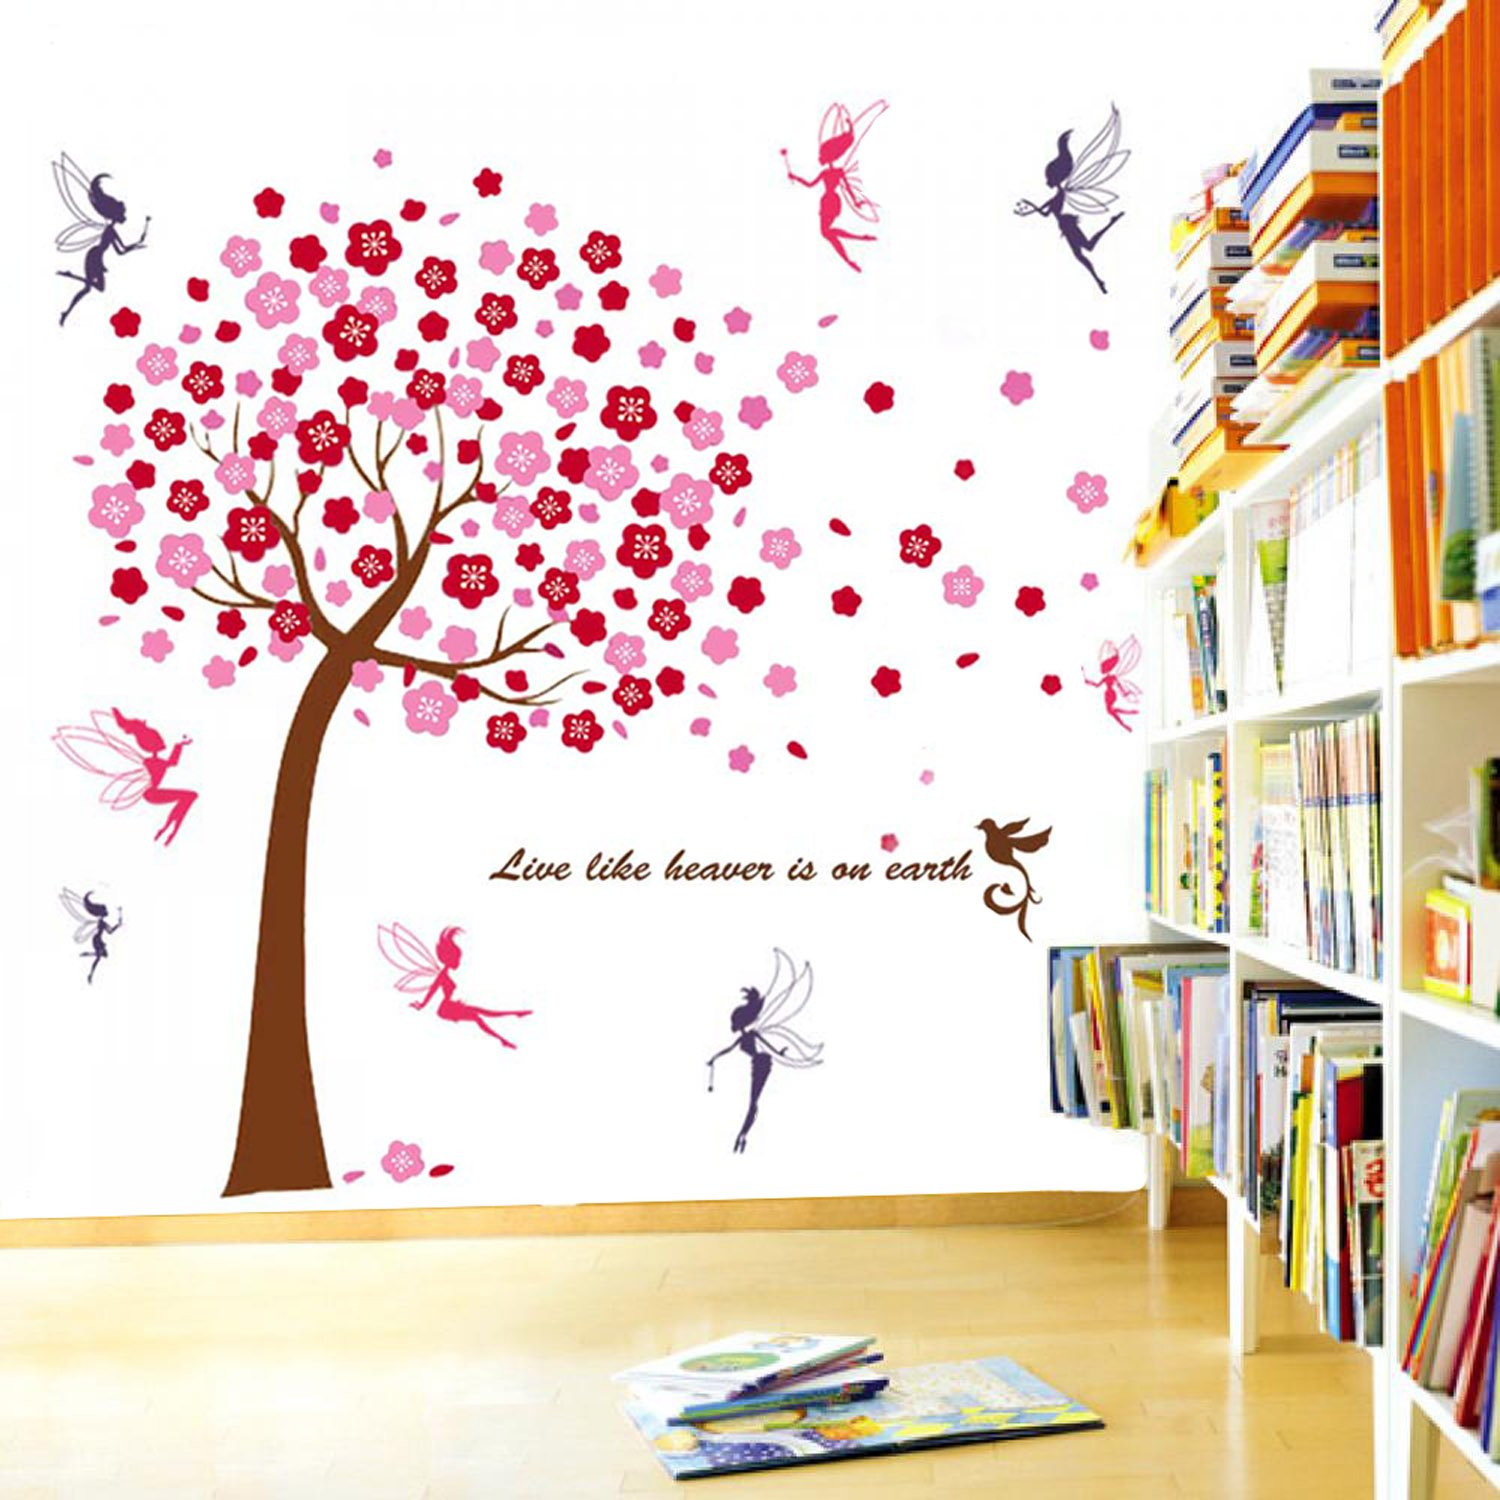 walplus wall stickers combo huge pink tree plus fairies office walplus wall stickers combo huge pink tree plus fairies office home decoration 175cm x 150 cm pvc self adhesive multi color amazon co uk kitchen